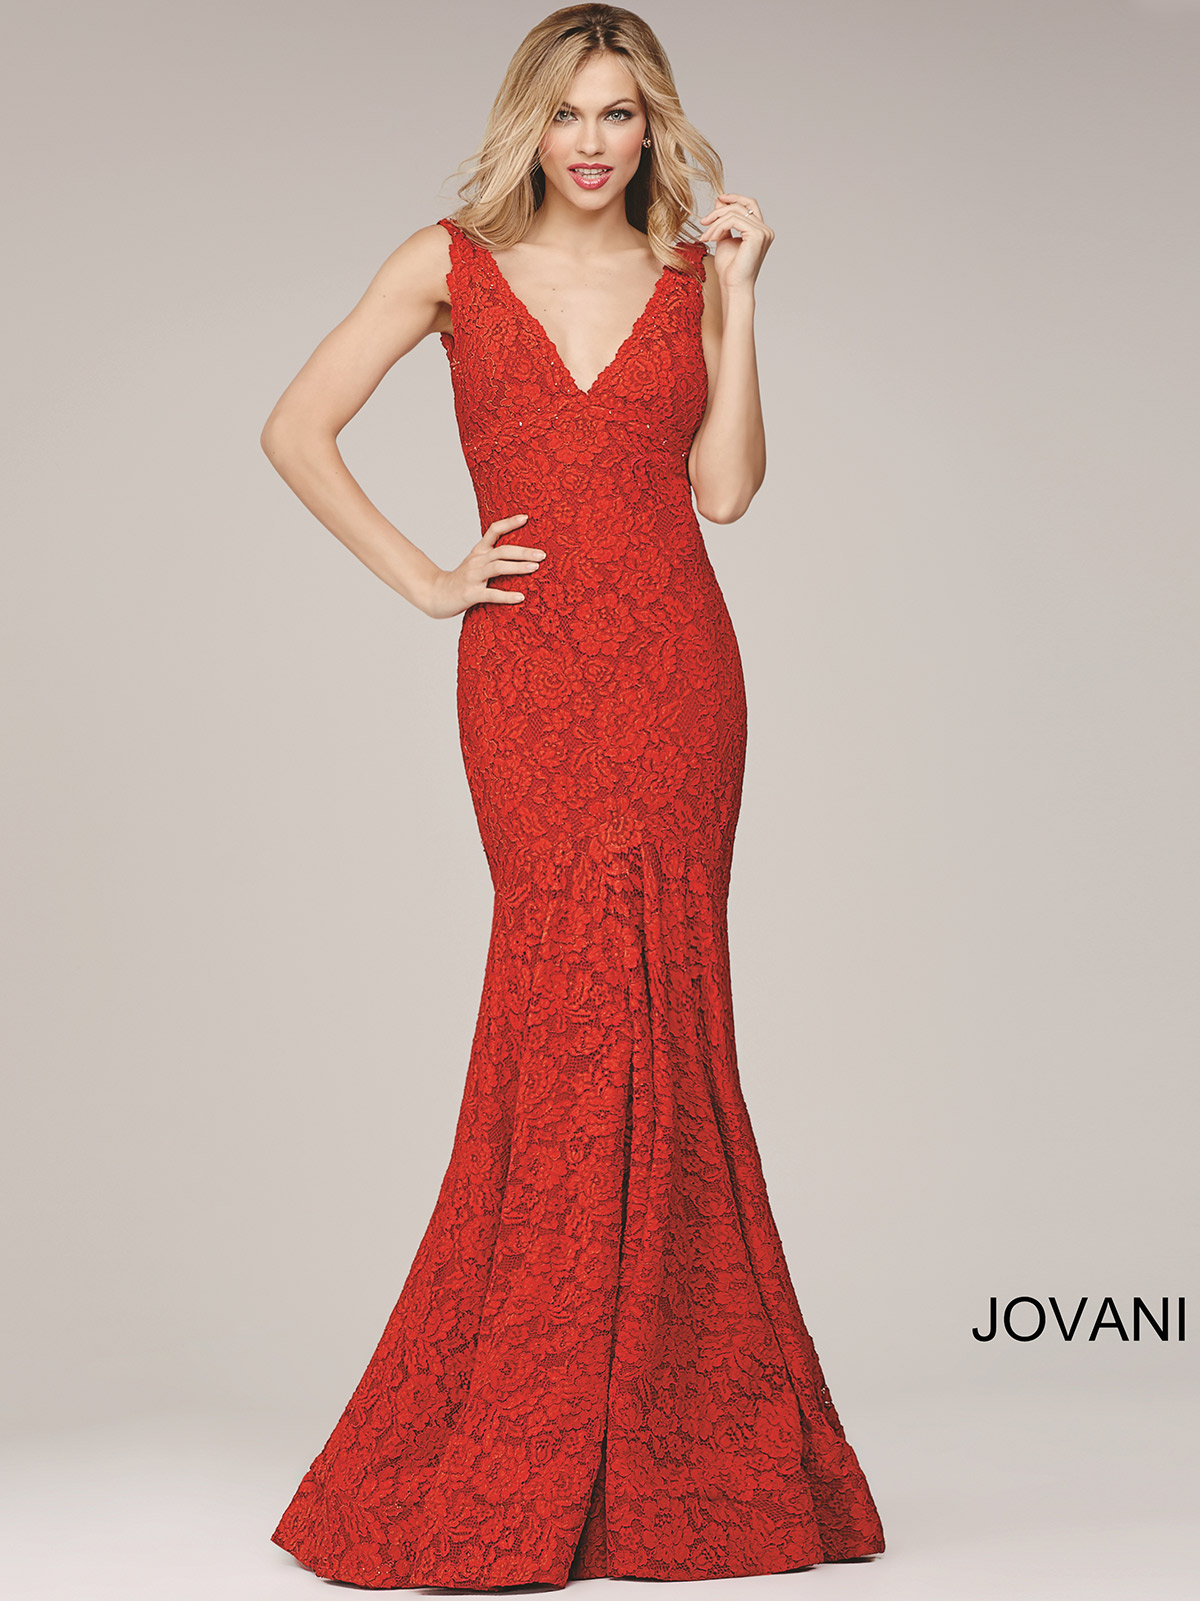 df14c723a35c6 V- Neck Mermaid Prom Gown by Jovani 33050Authorized Jovani Retailer